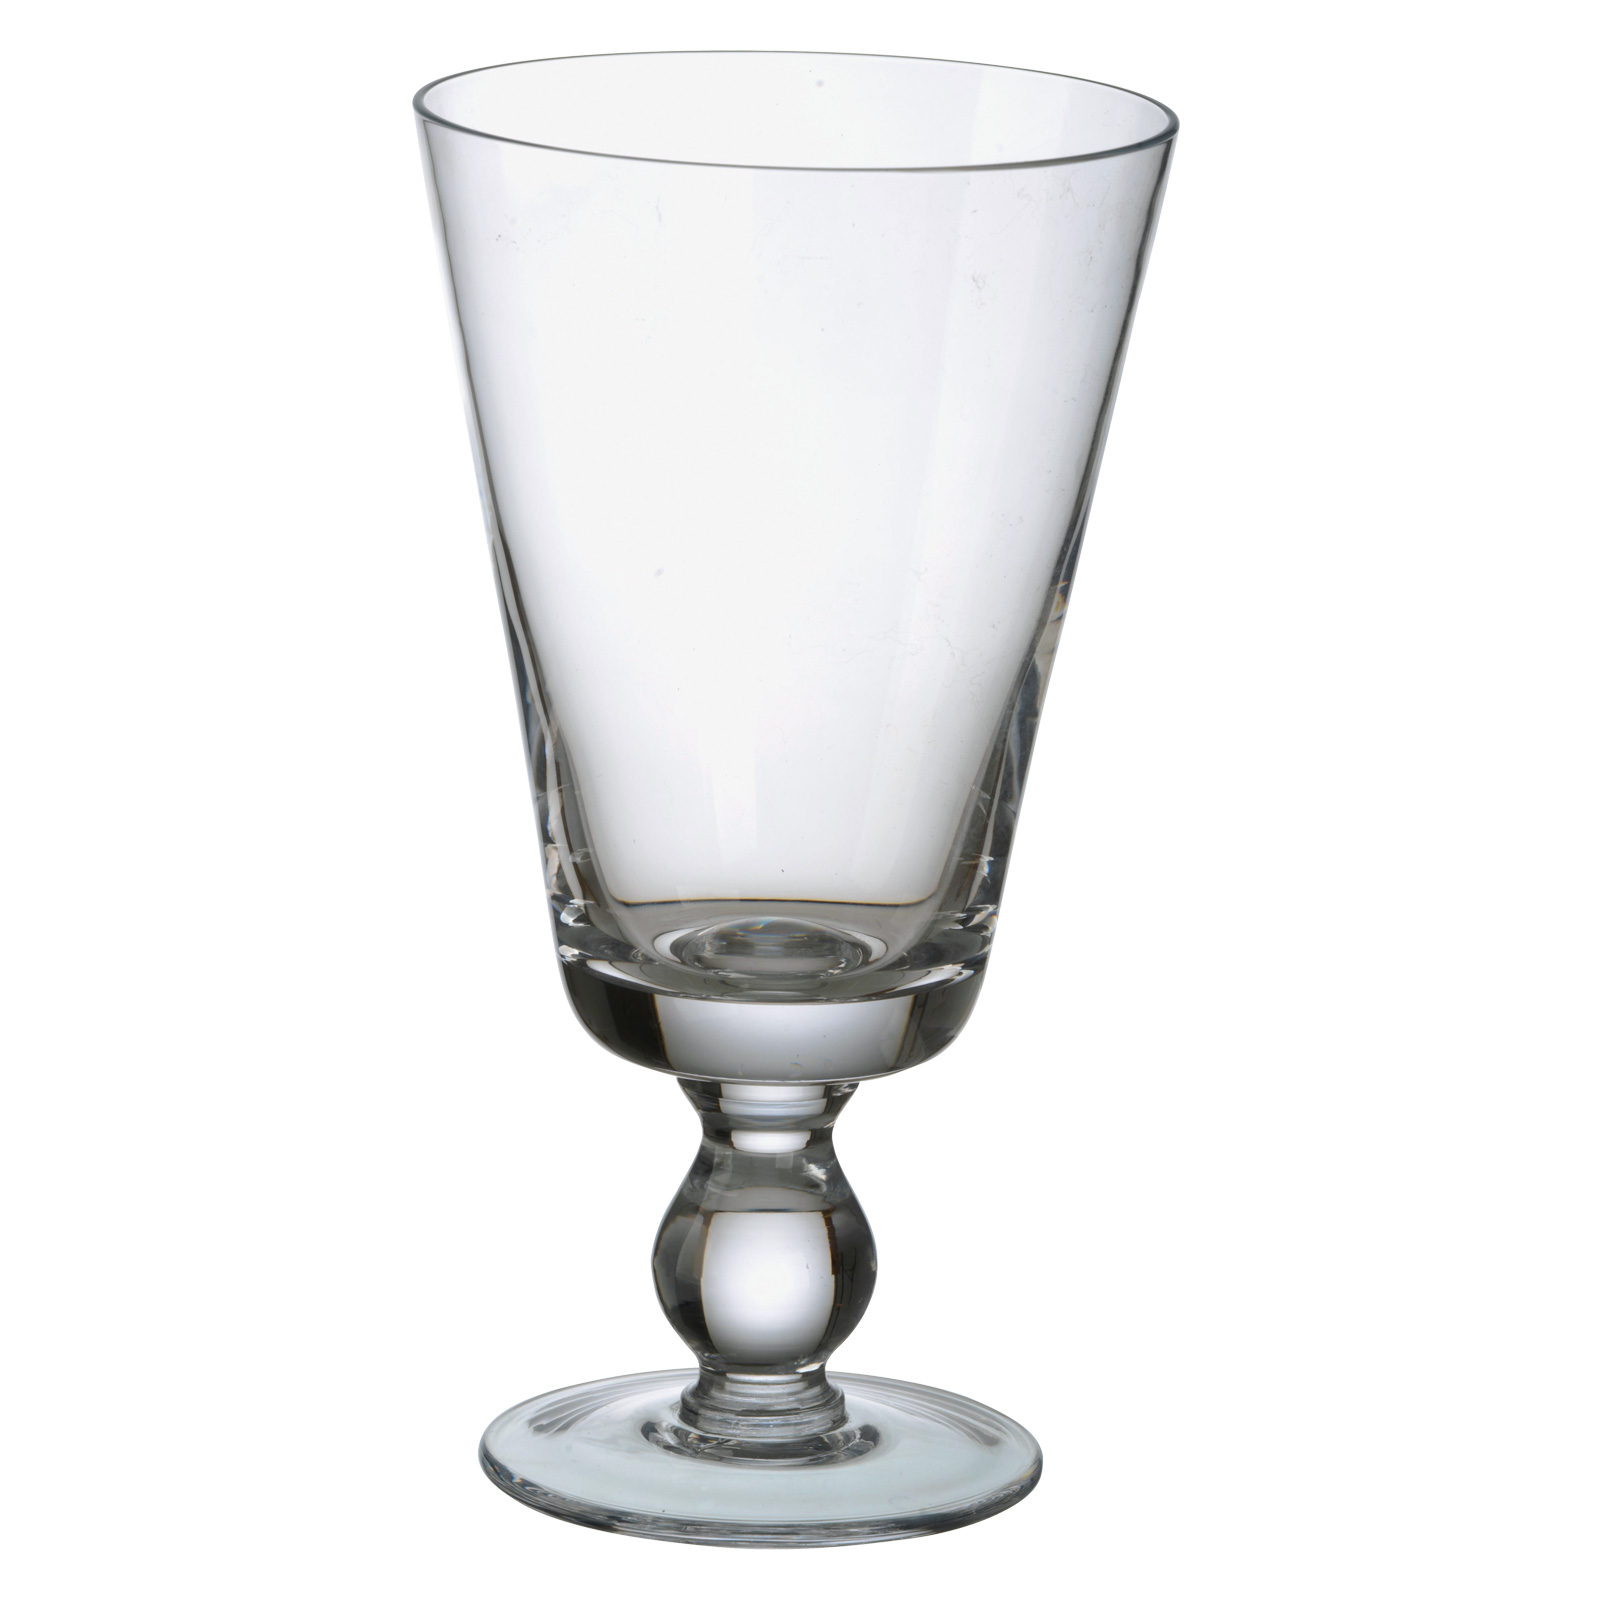 Goblet Large by Dornberger